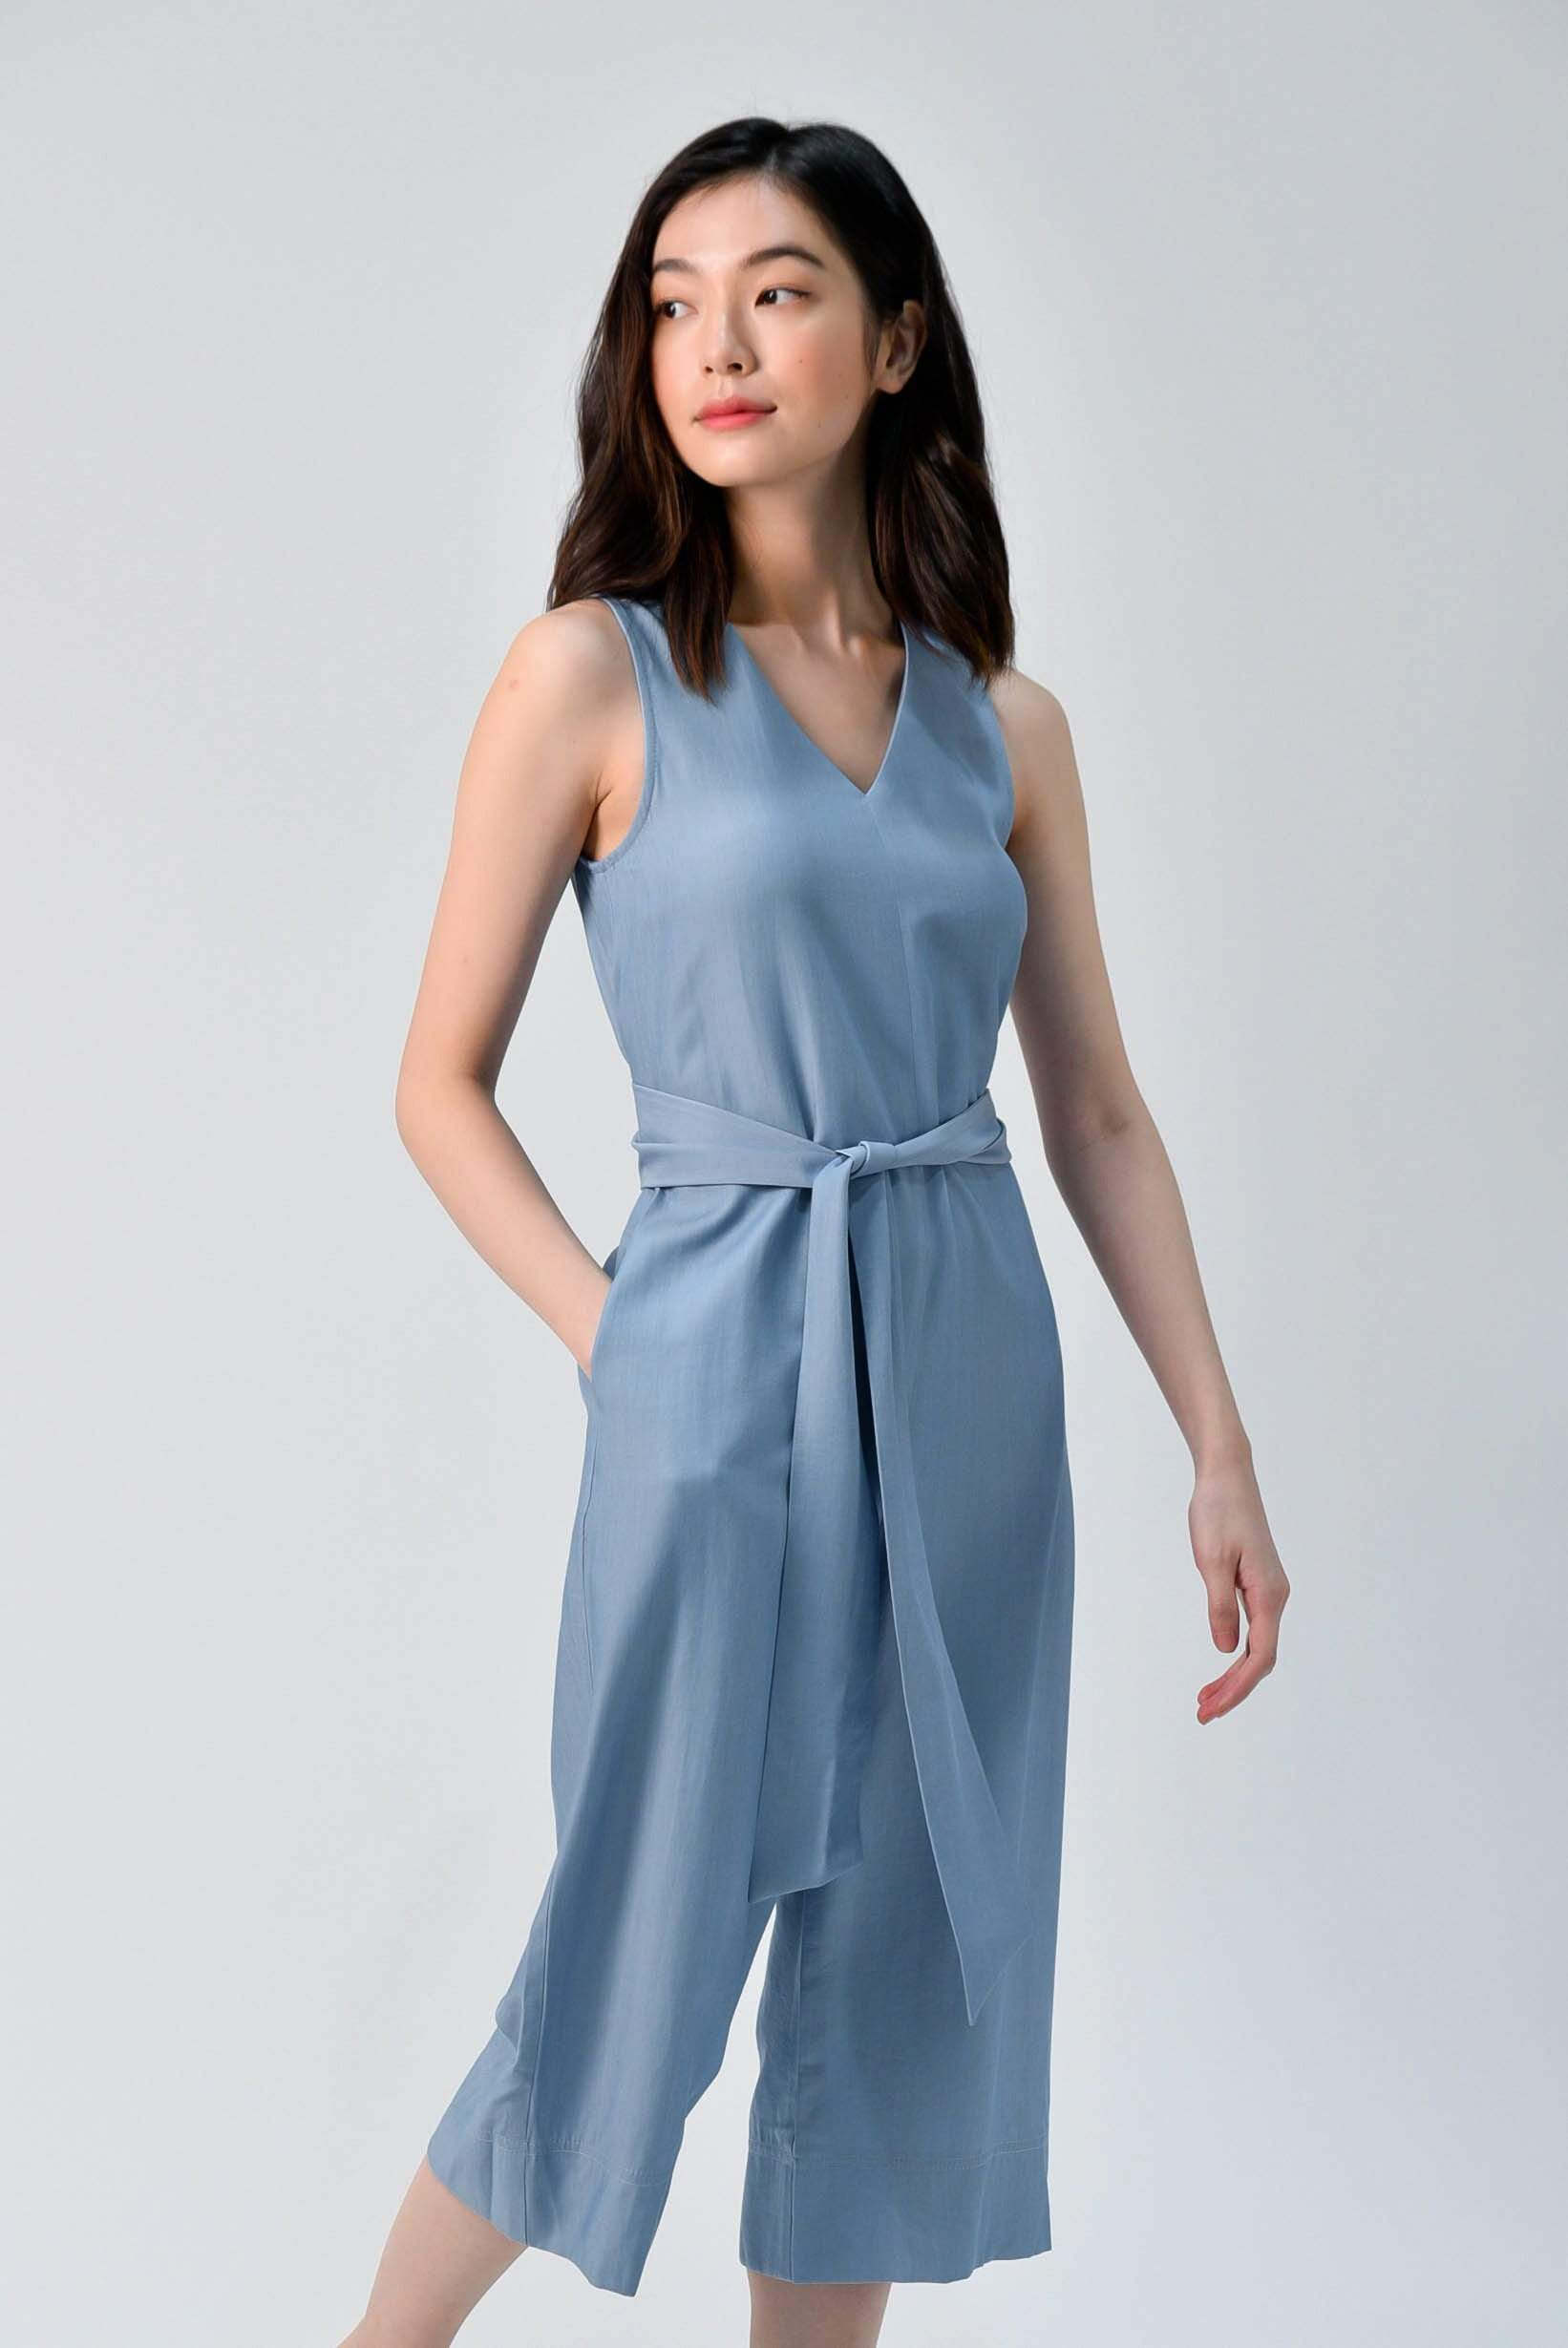 AWE One Piece YEJIN TIE-SASH ROMPER IN BLUE